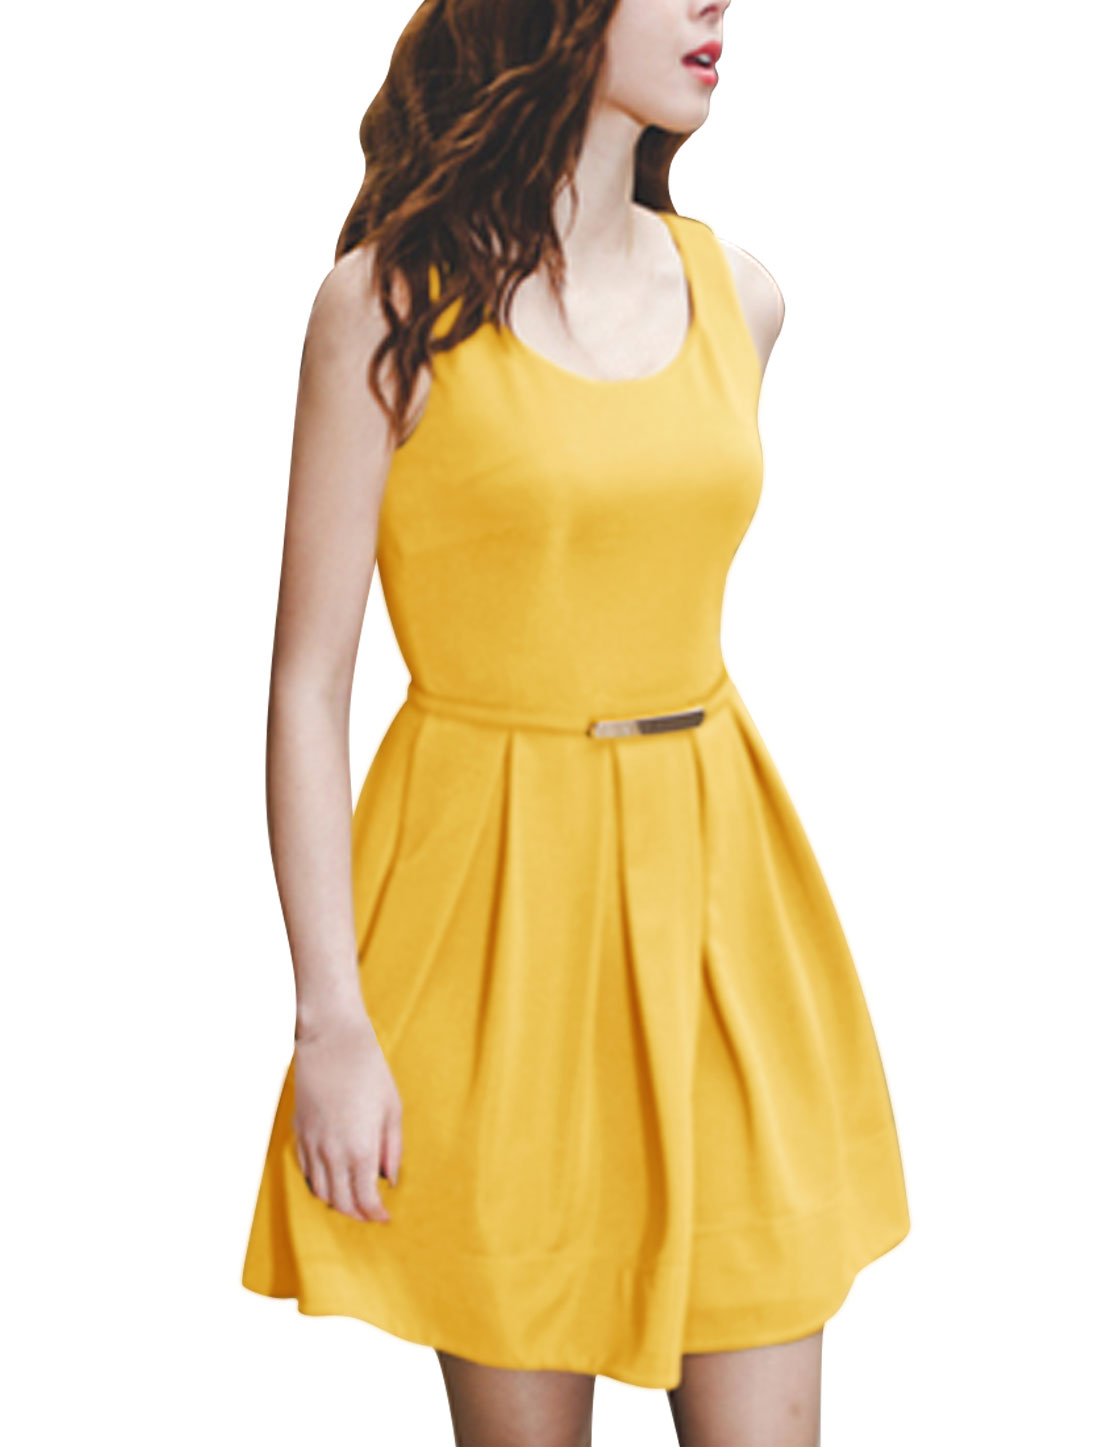 Ladies Yellow Hidden Zipper Back Crisply Tailored Trim Ruched Detail Mini Dress S w Belt